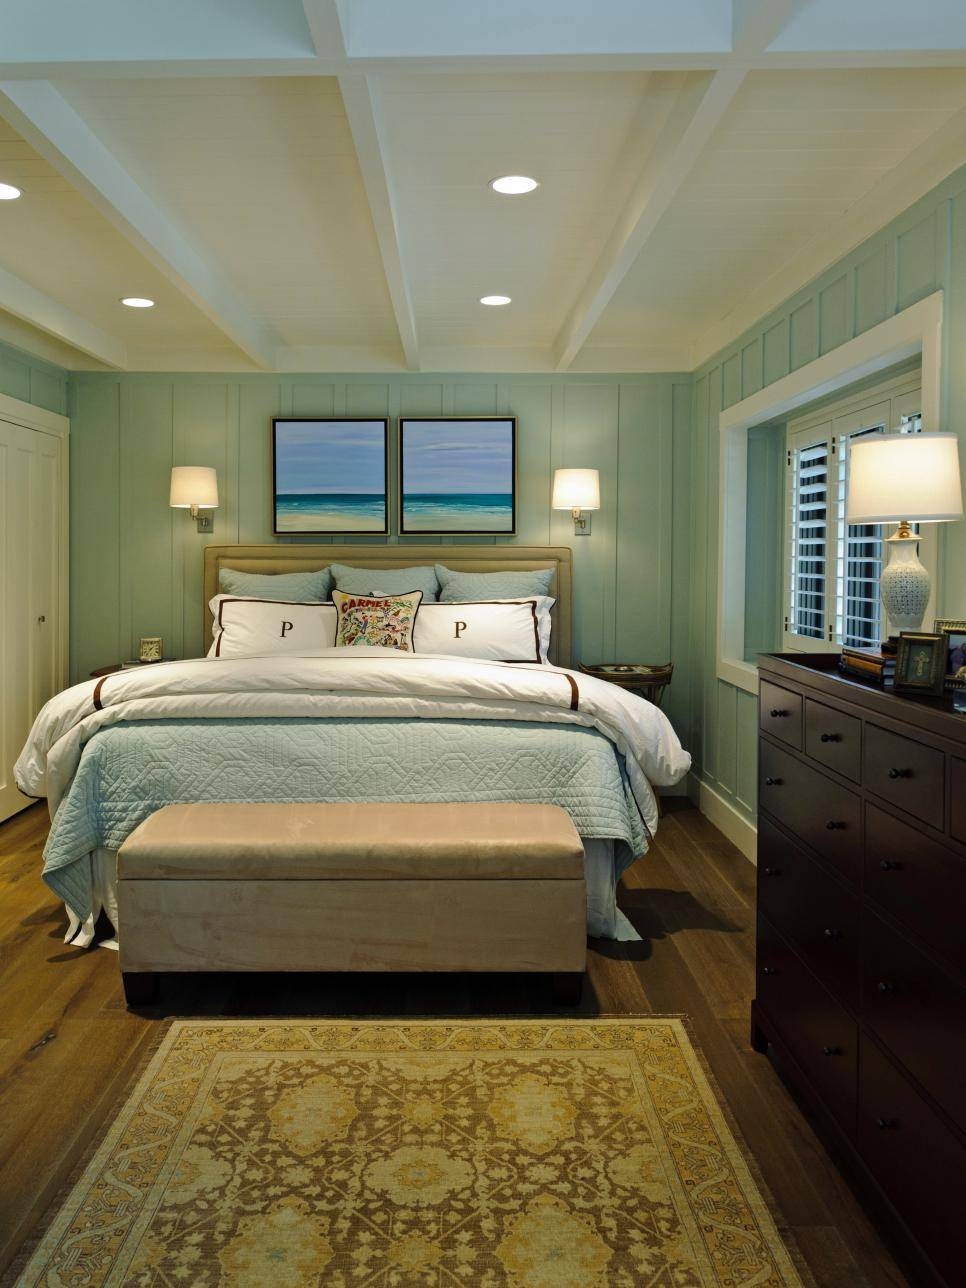 Coastal Inspired Bedrooms | Hgtv Pertaining To Current Beach Wall Art For Bedroom (View 17 of 20)